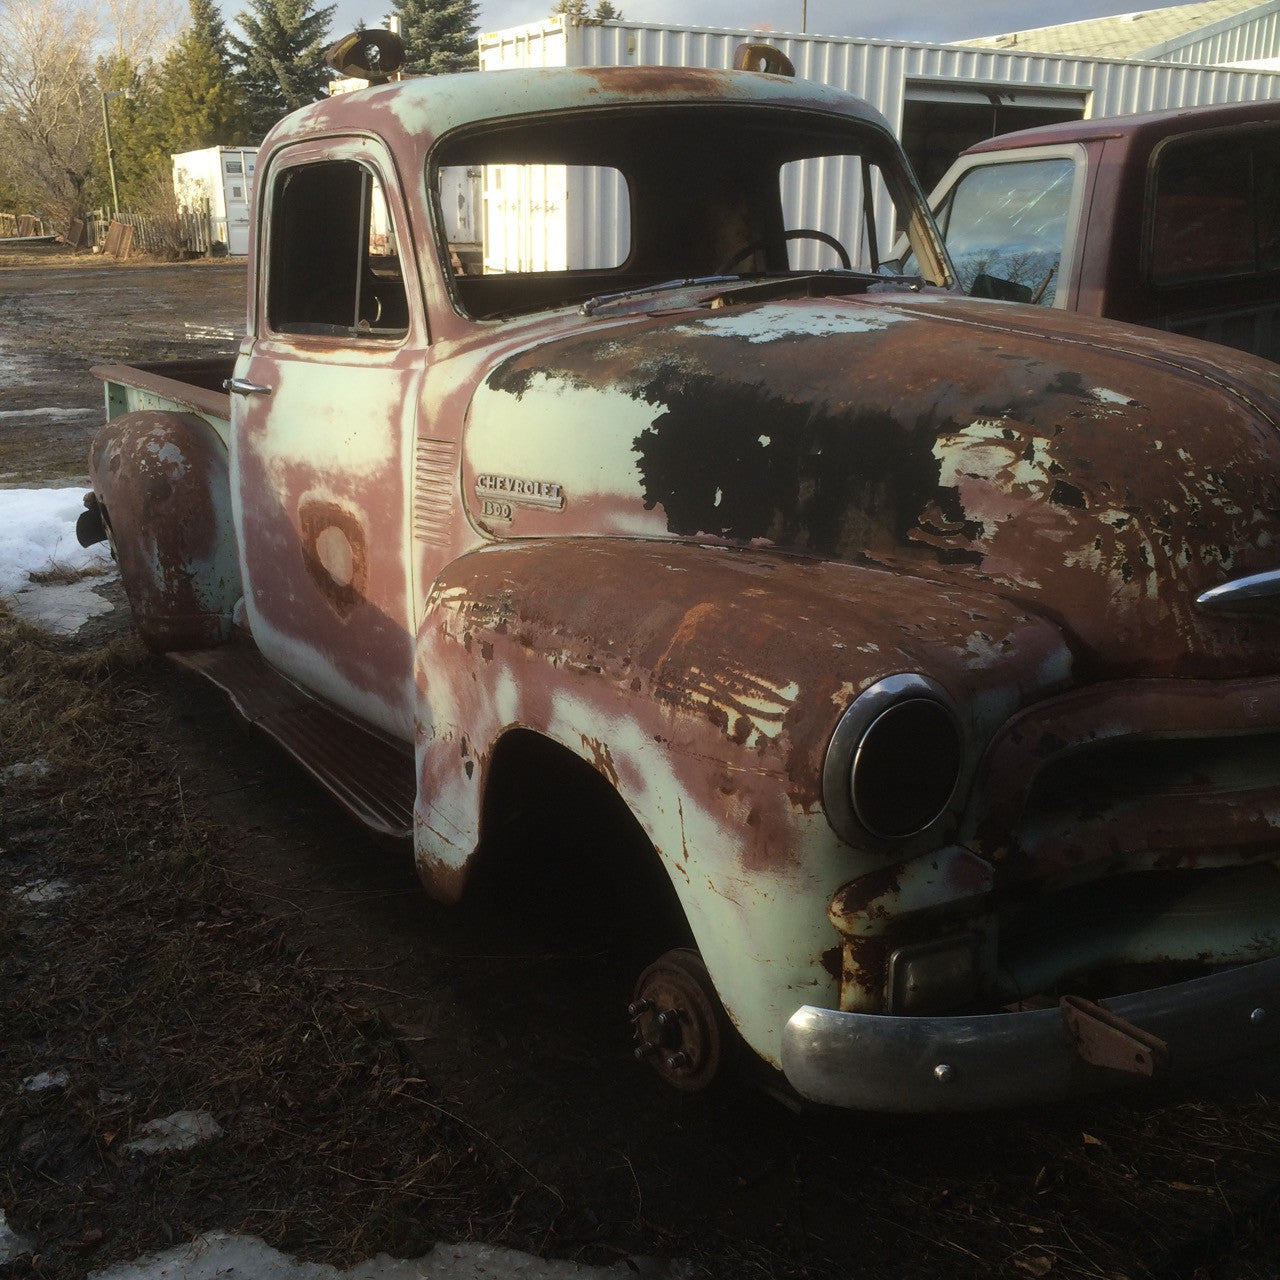 1954 Chevy Truck For Sale Alberta | HJC's - Clothing and More!